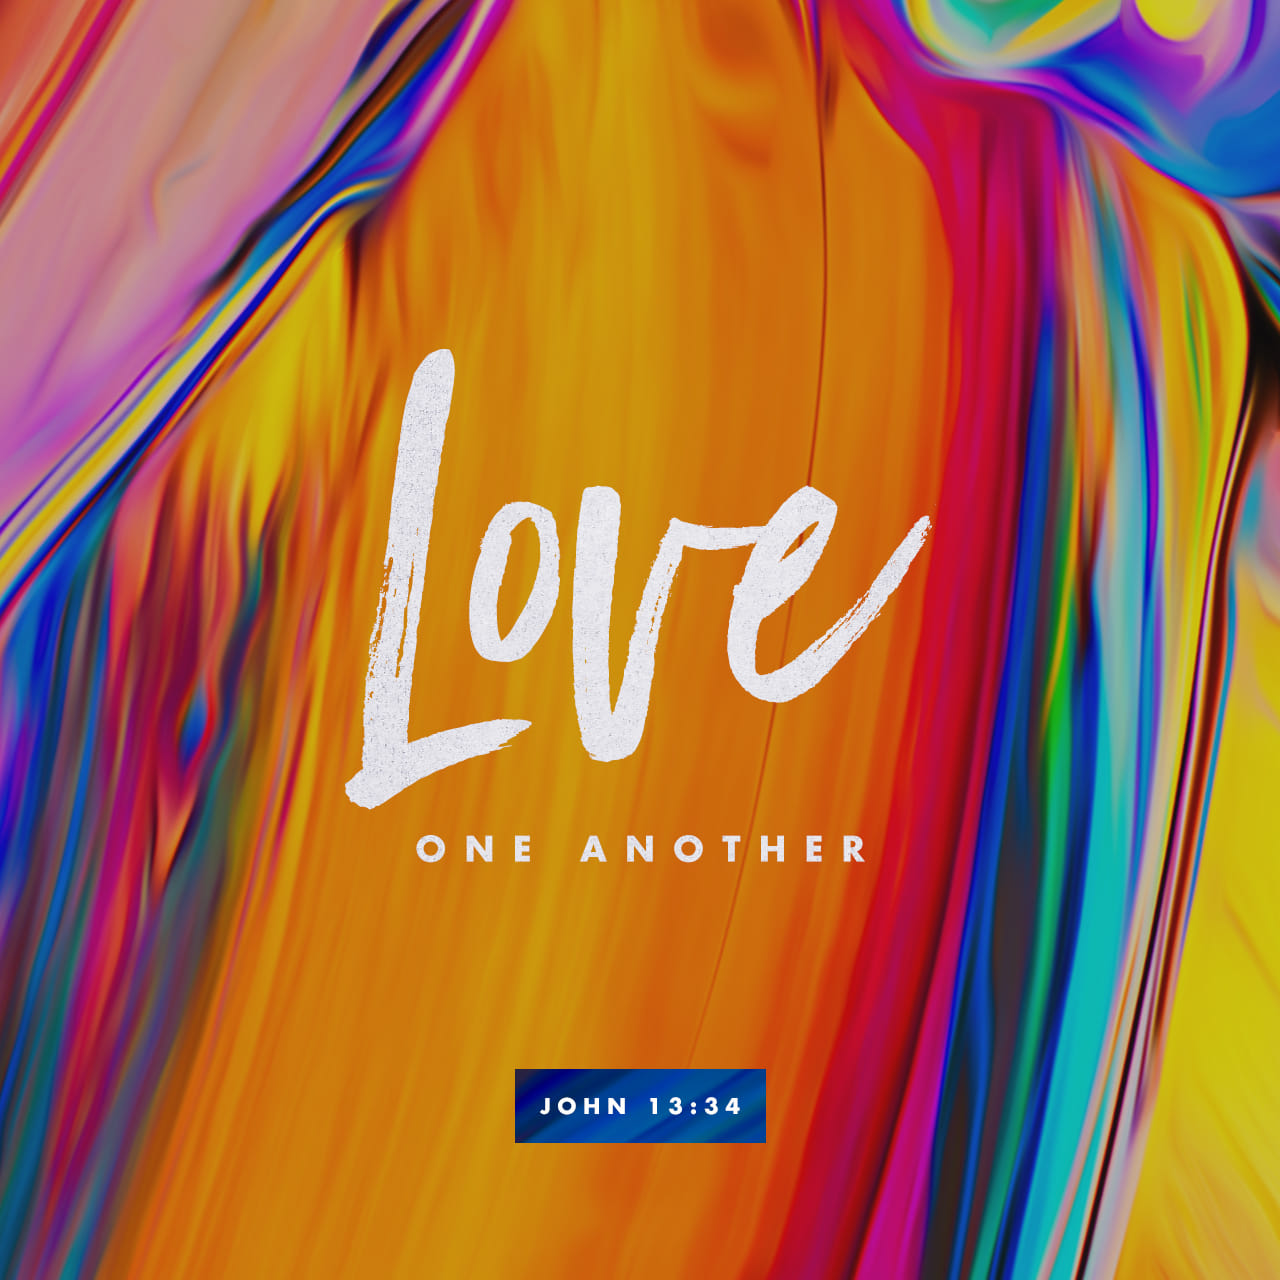 John 13:34-35 A new commandment I give unto you, That ye love one another; as I have loved you, that ye also love one another. By this shall all men know that ye are my disciples, if ye have love one to another. | King James Version (KJV)